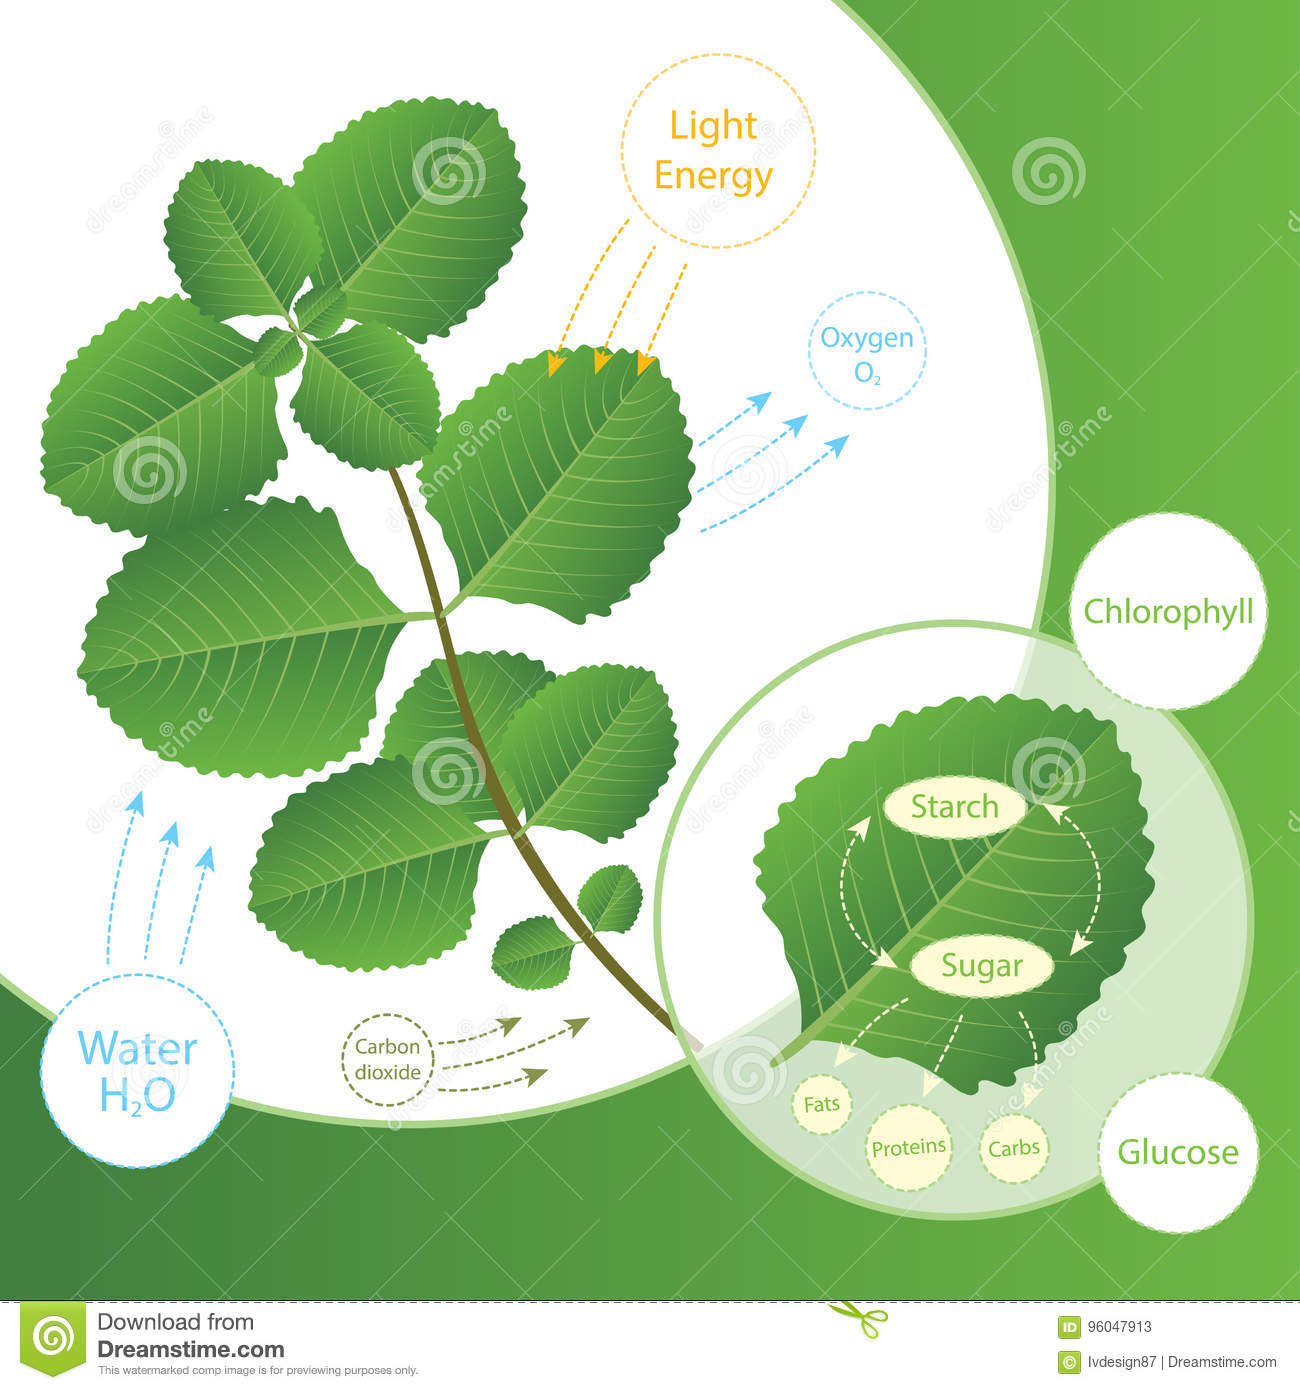 Photosynthesis process in plant. Plants make food using sunlight. Biology scheme of photosynthesis for education